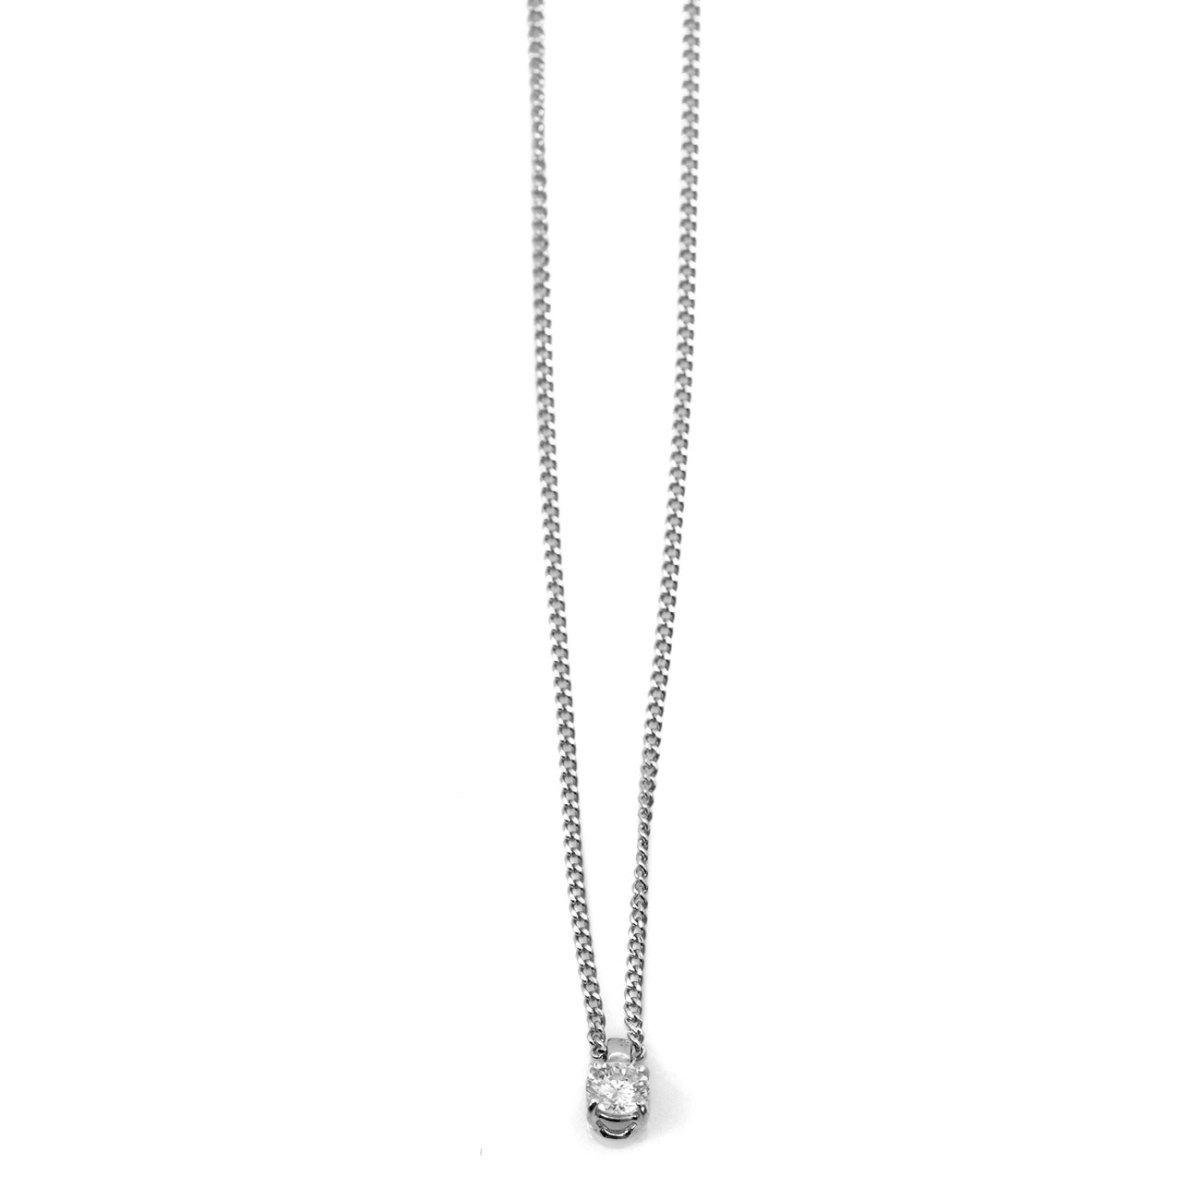 Diamond pendant 0.43ct, chain, 18K white gold, ref. PE+CH-A543 | EVENOR Jewellery • Brand new and vintage jewellery